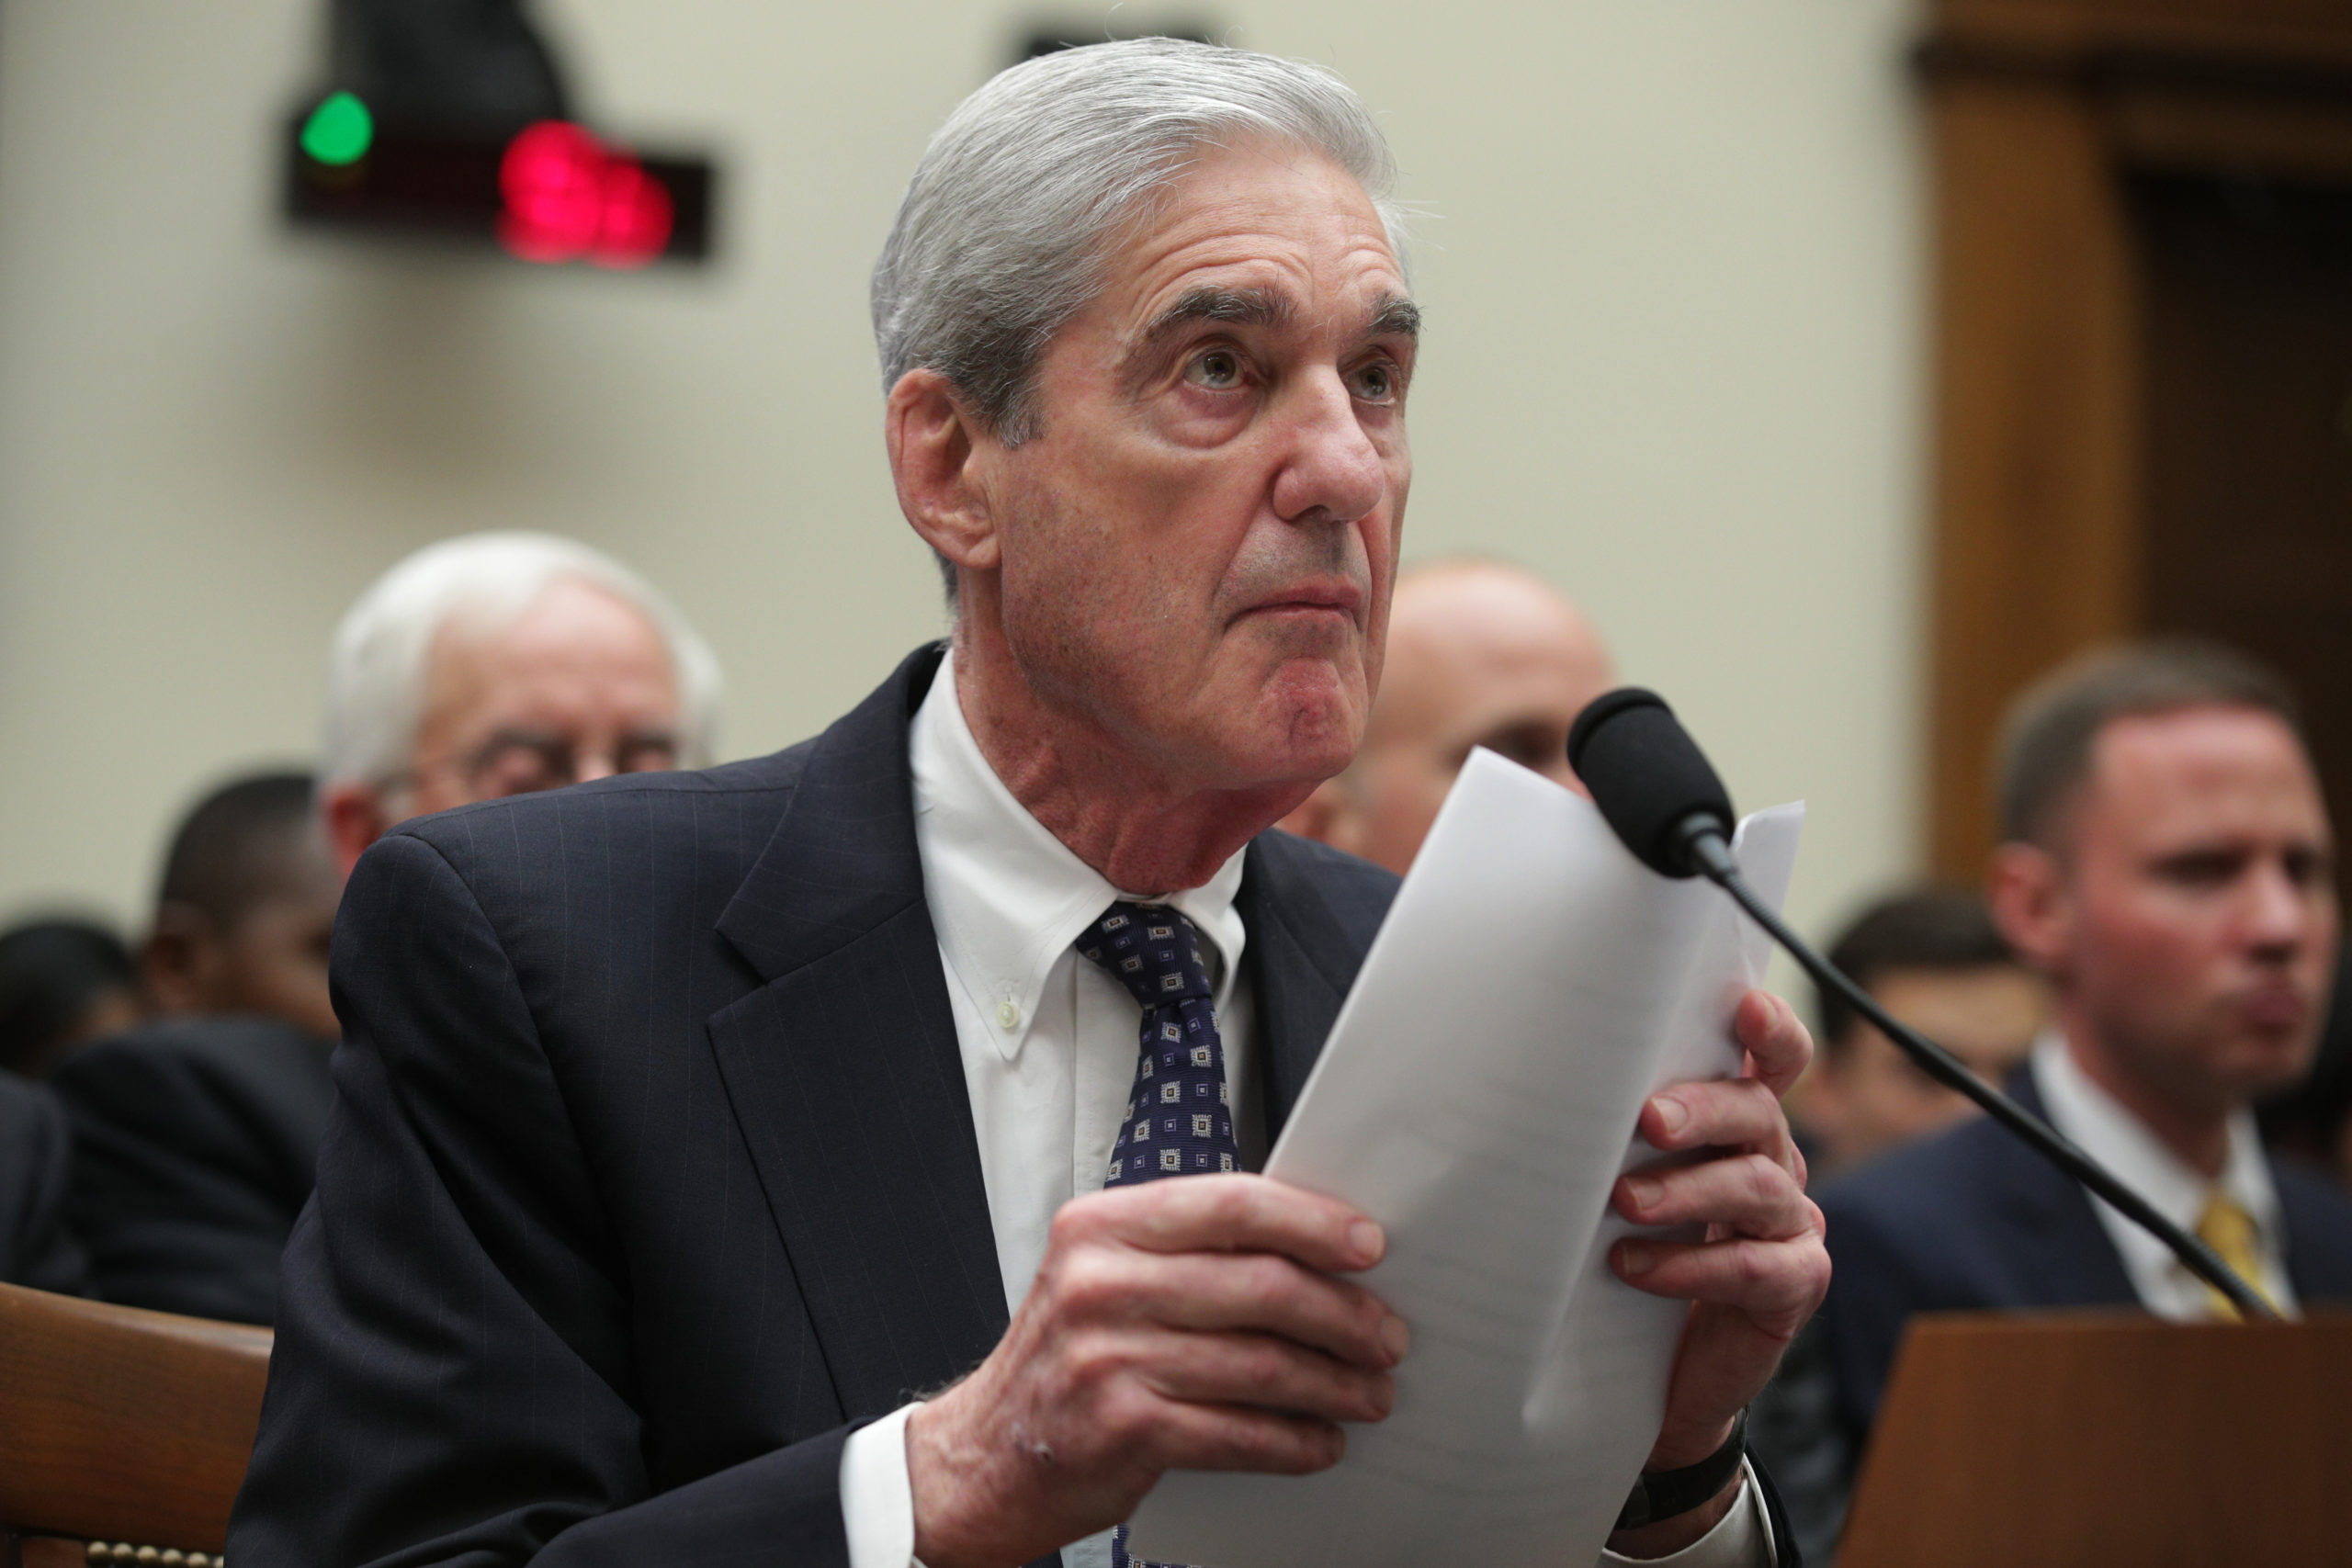 Former Special Counsel Robert Mueller testifies before the House Intelligence Committee about his report on Russian interference in the 2016 presidential election. (Photo by Alex Wong/Getty Images)